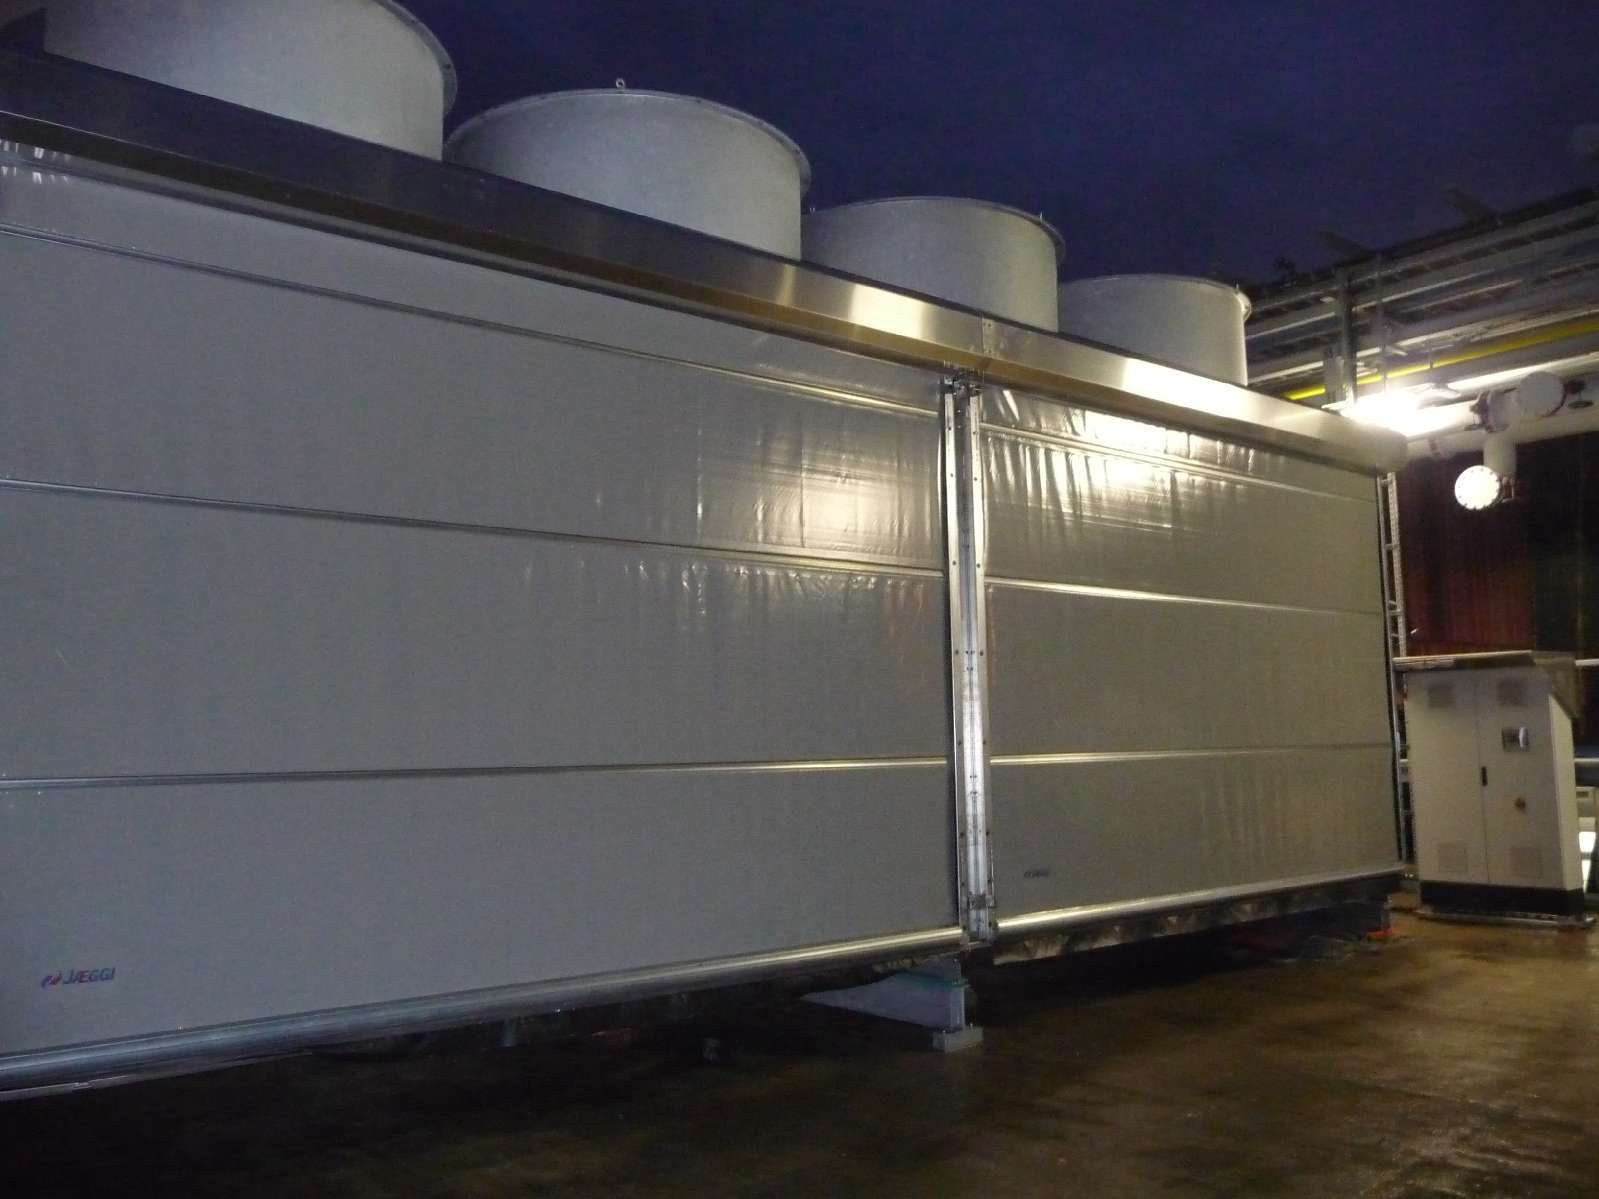 weather protection on a cooling system